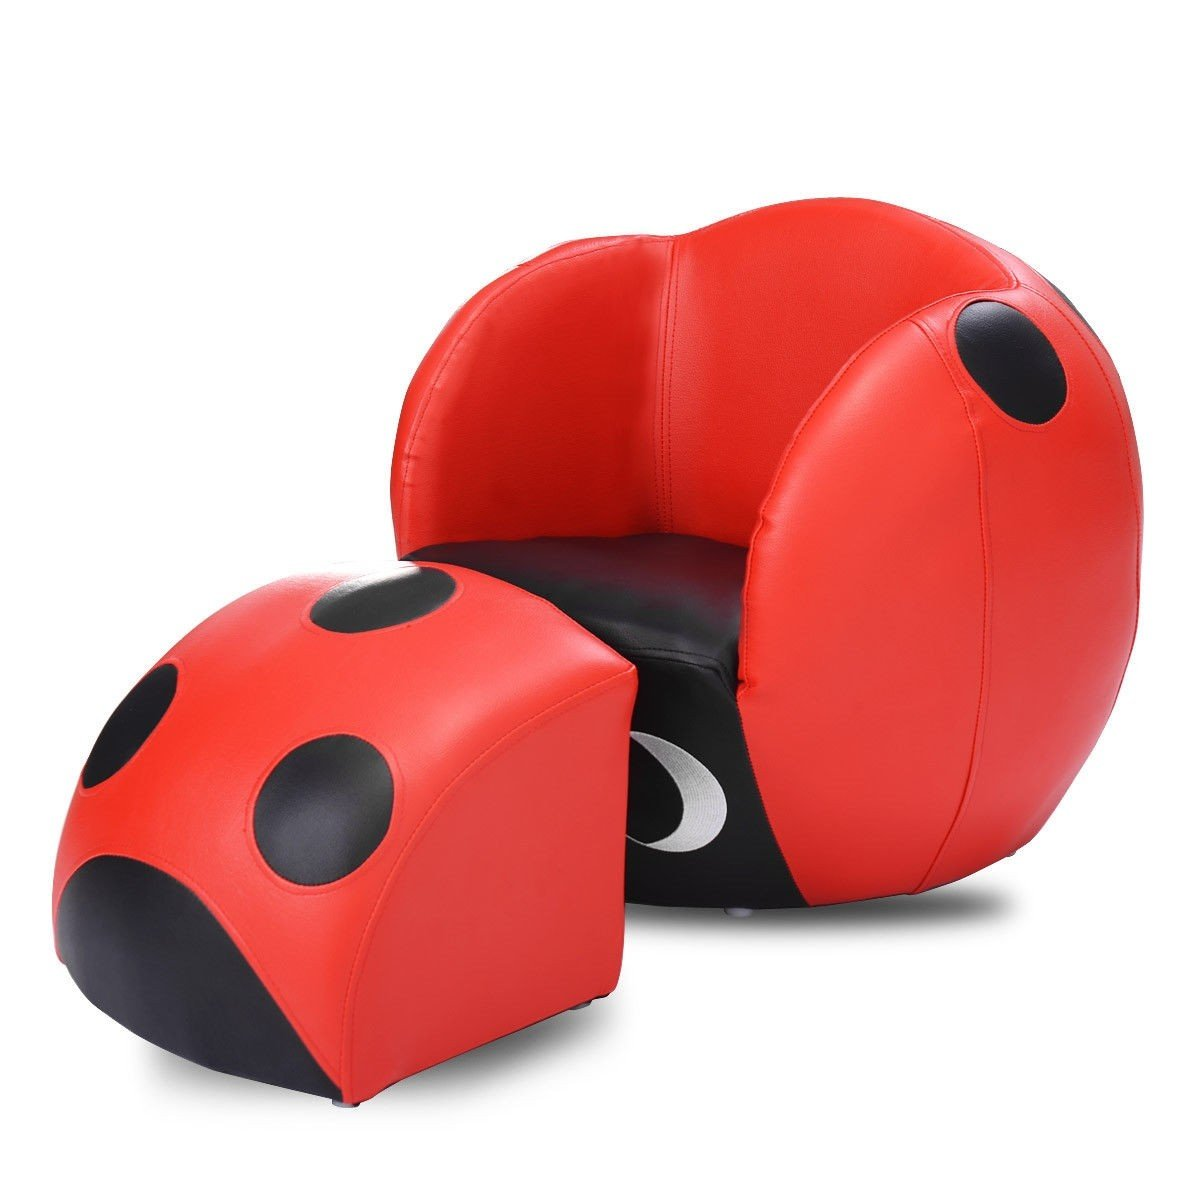 Svitlife Insect Shaped Kids Sofa with Ottoman Shaped Matching Red New Living Room Soft Armrest